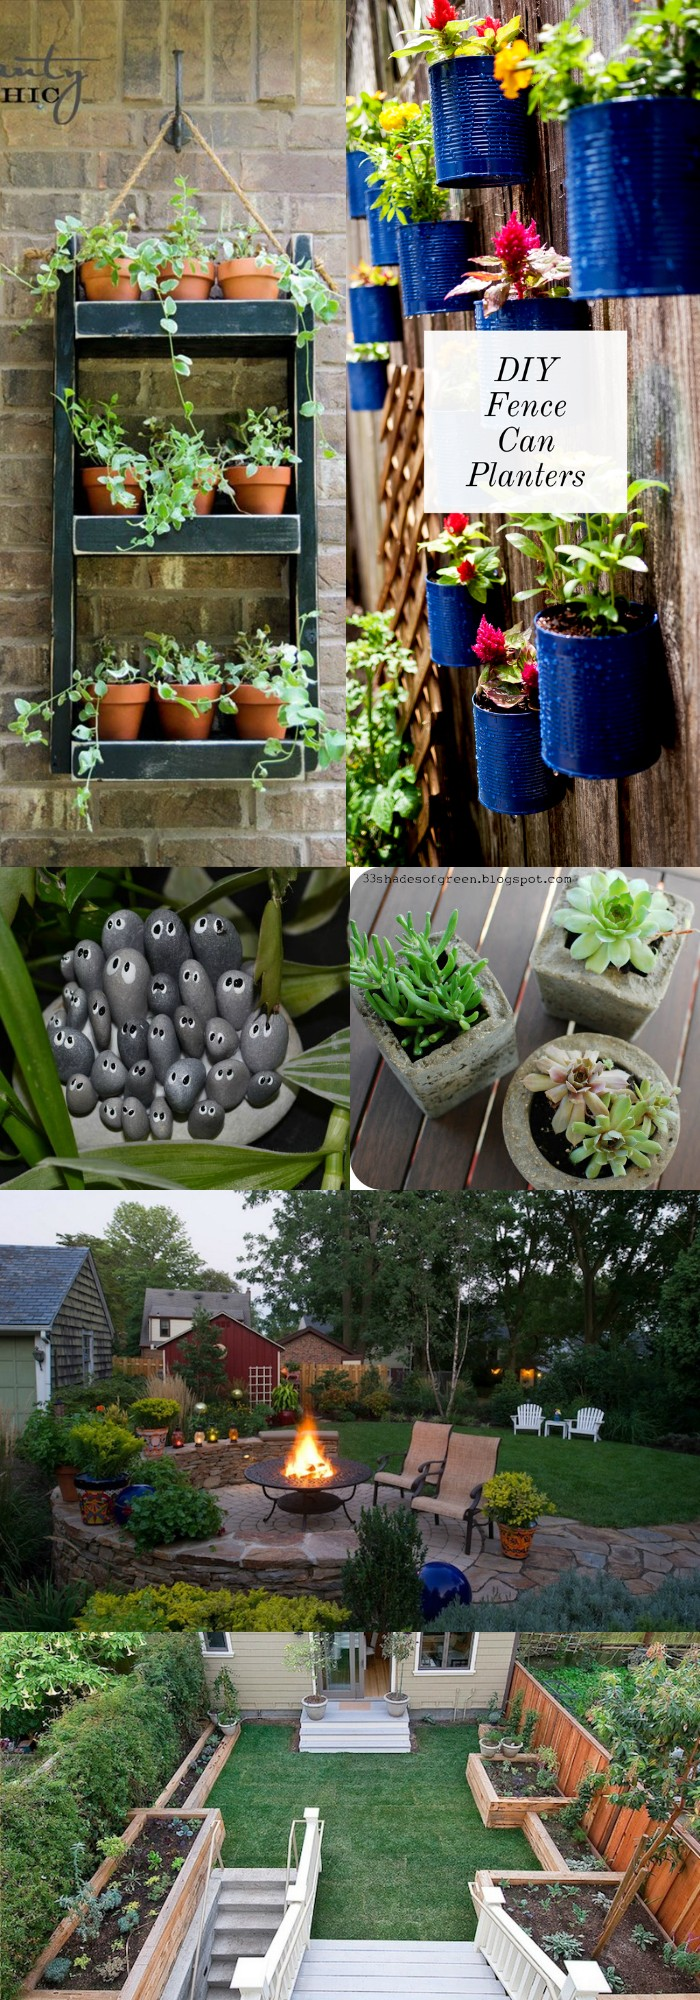 With These 9 Creative Ways You Can Garden Even Without a Garden!